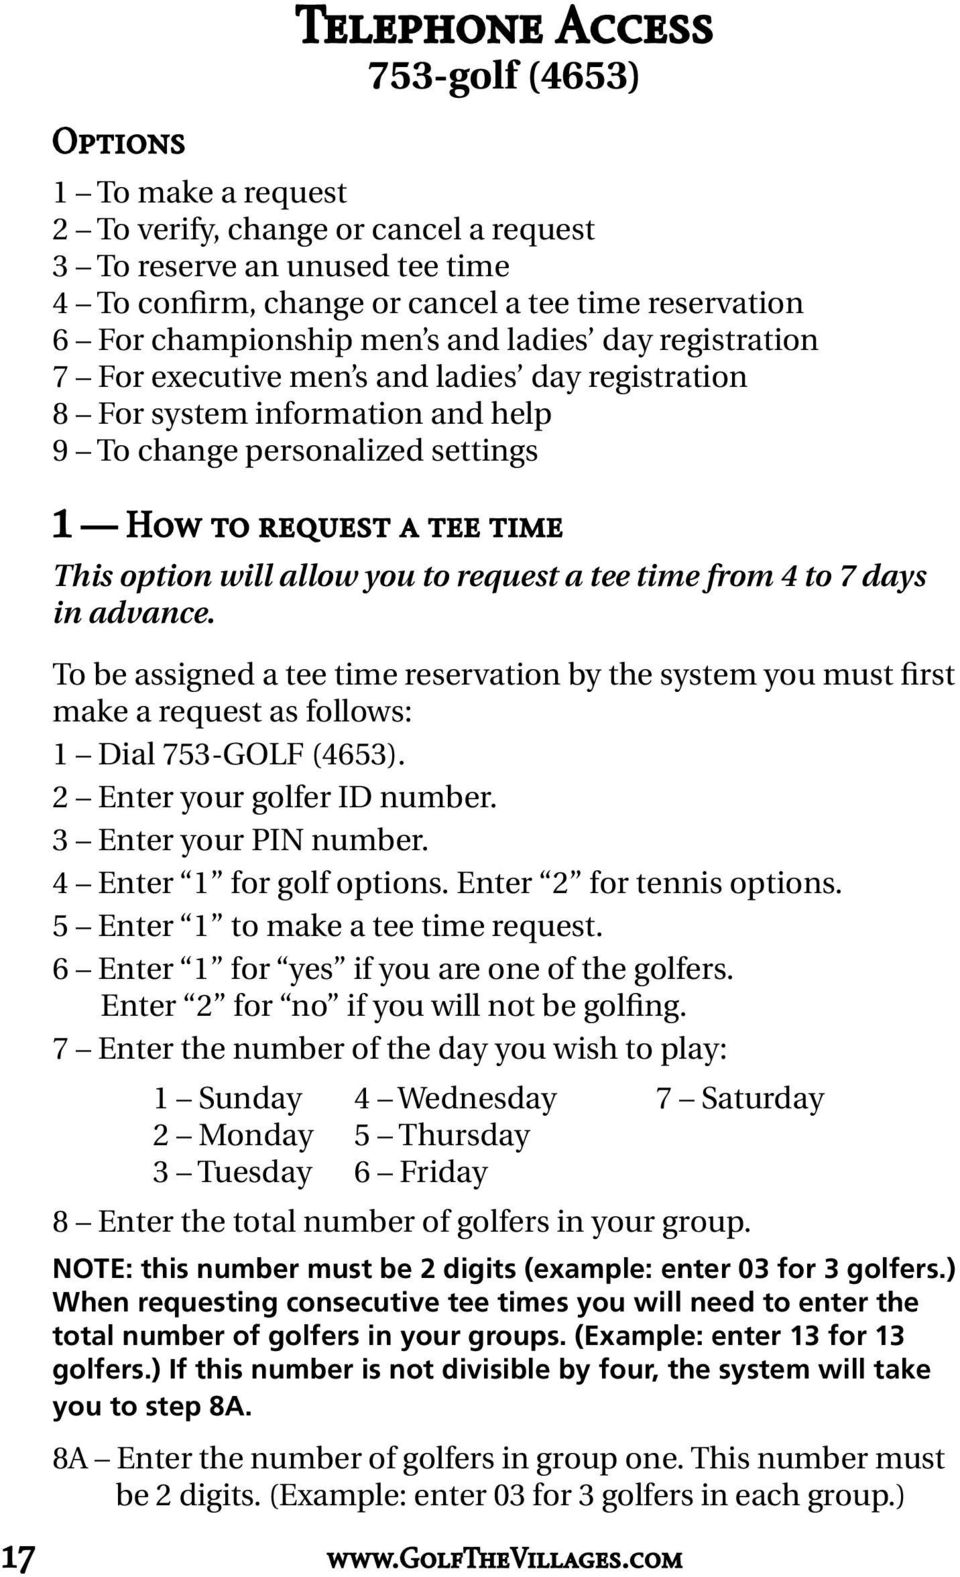 option will allow you to request a tee time from 4 to 7 days in advance. To be assigned a tee time reservation by the system you must first make a request as follows: 4 Enter 1 for golf options.